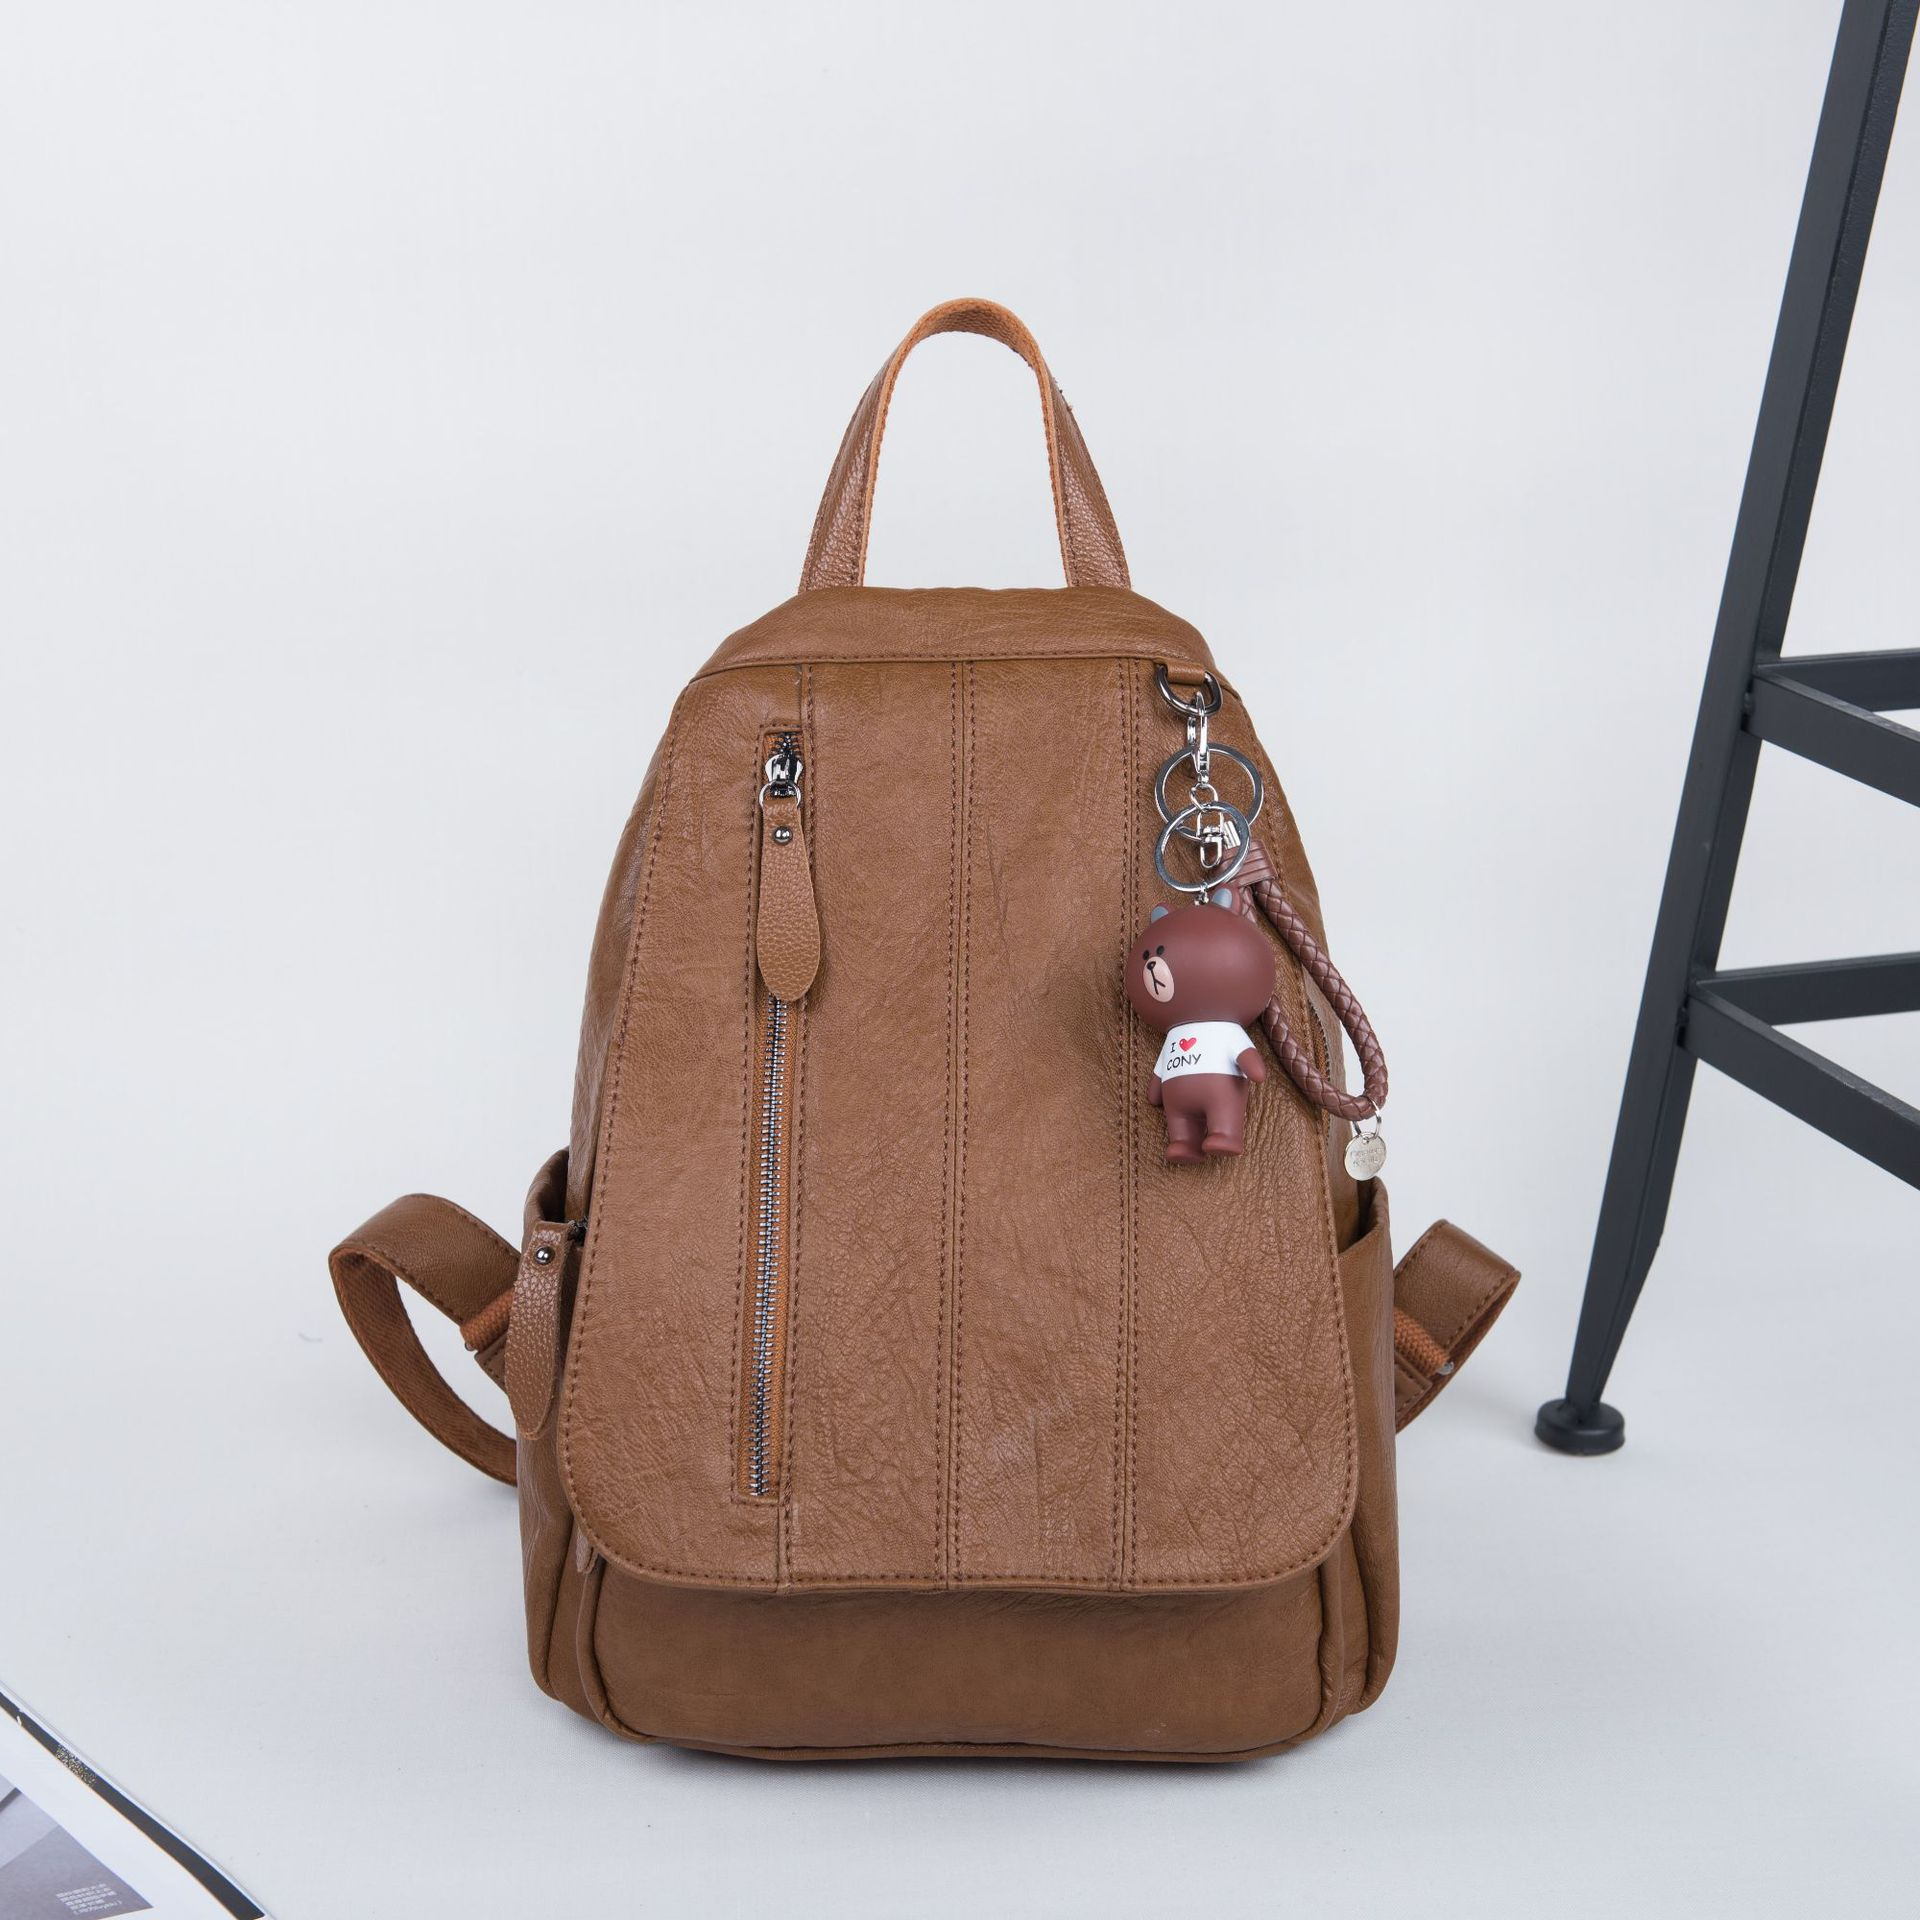 Travel Women Bag Soft Leather Mochila Feminina 2018 New Small Backpack Rugzak School Teenage Girl Backpacks Little europe ladies leather backpack women mochila sheepskin travel bolsa feminina school bags teenage girl backpacks